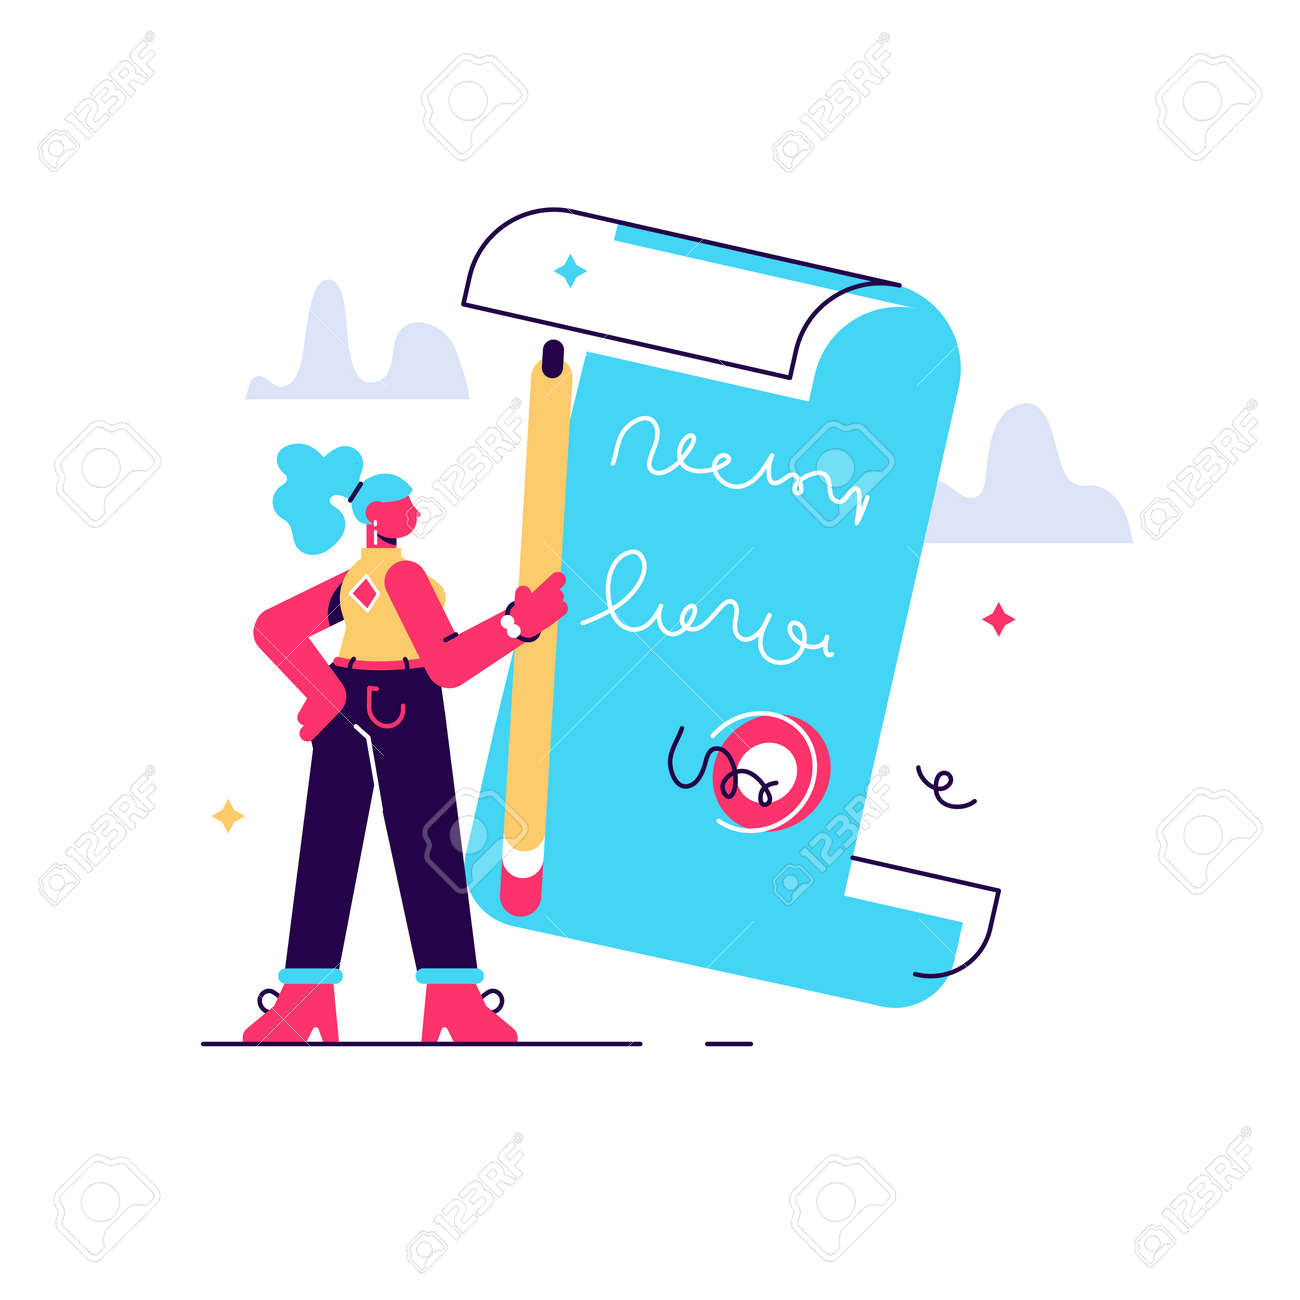 Contract signing. Deal confirmation, official document signature, business statement. Office worker doing paperwork, bureaucracy and formalities idea. Vector isolated concept metaphor illustration - 146230528